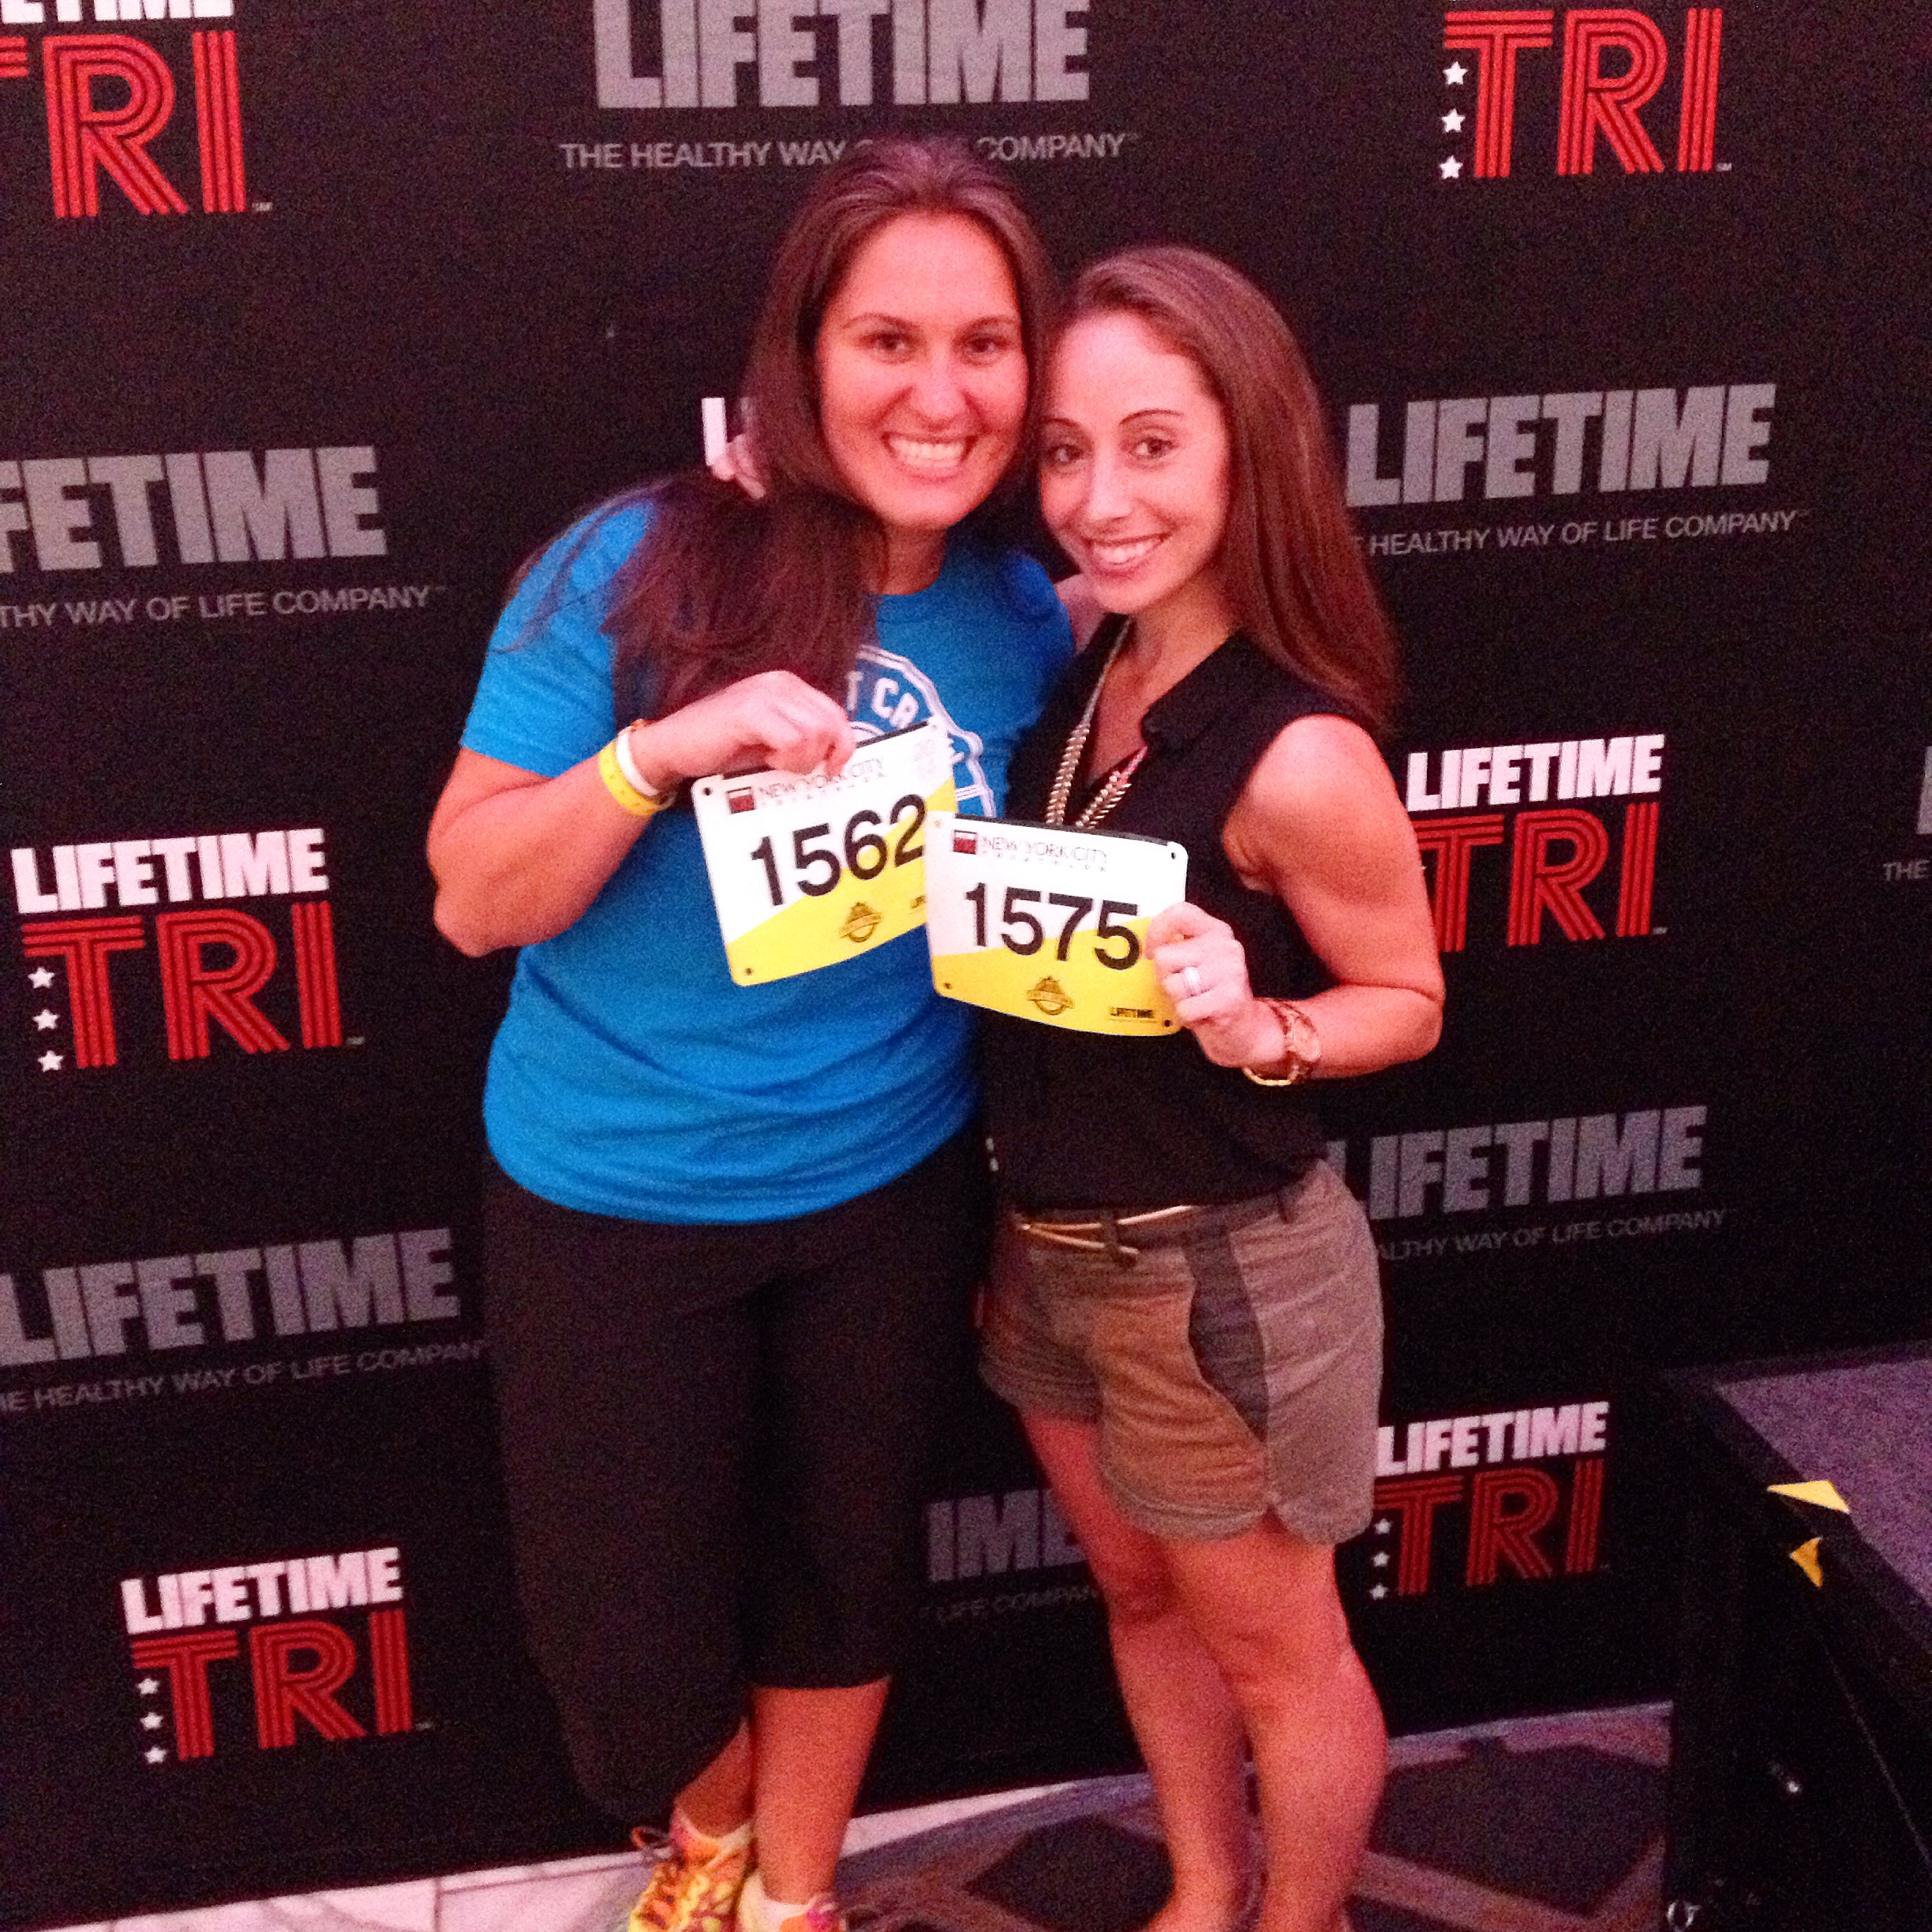 Hayley and I pick up our bibs for NYC Tri '14